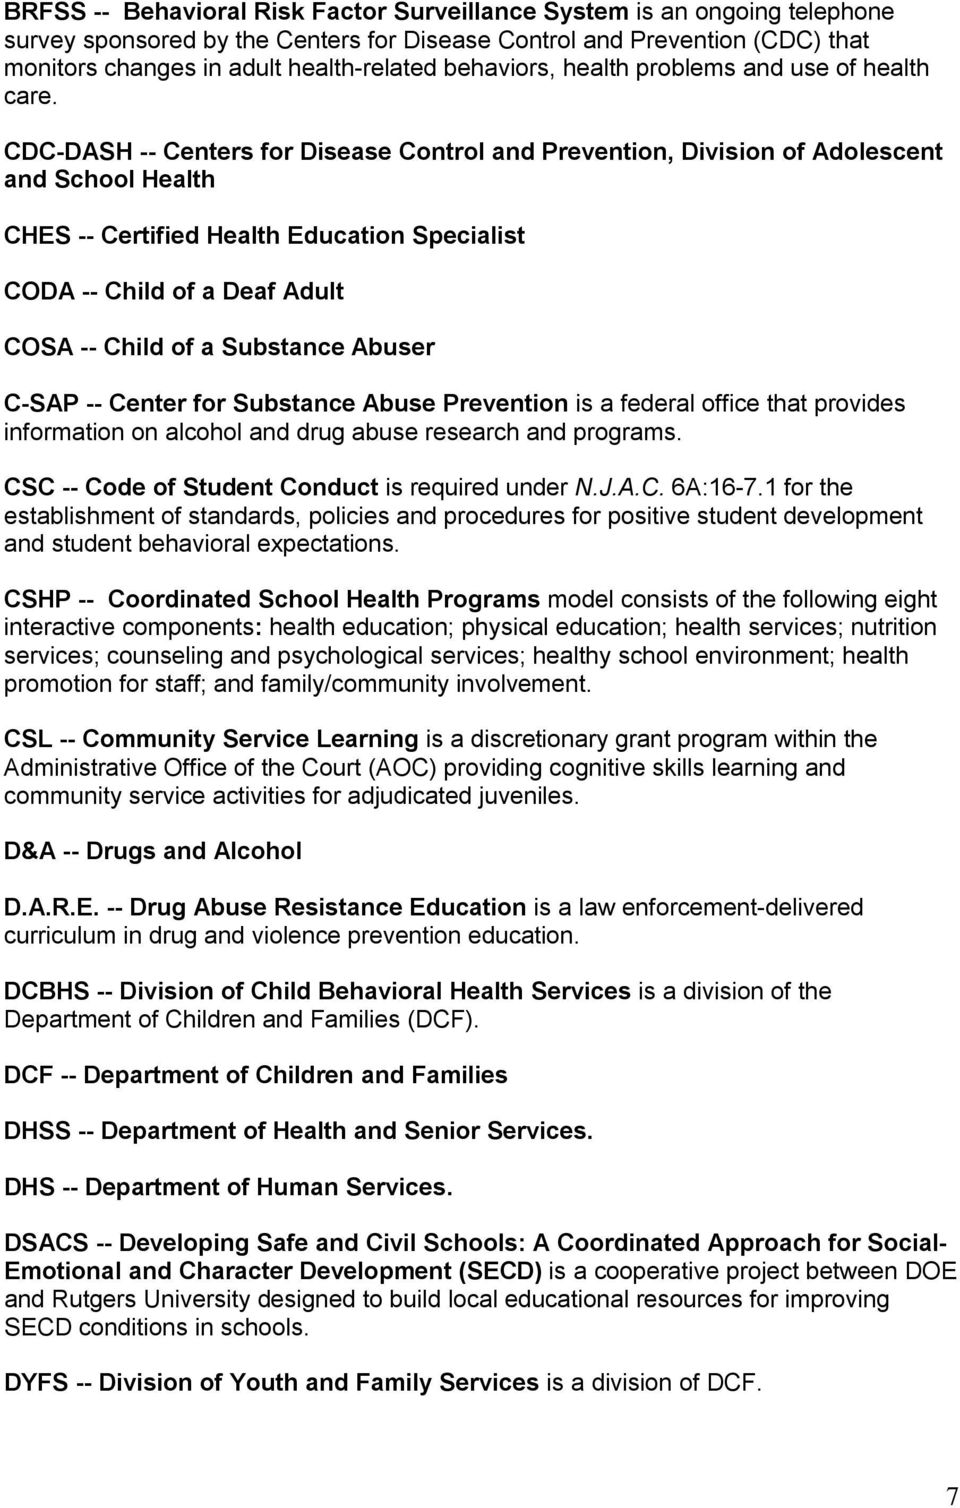 CDC-DASH -- Centers for Disease Control and Prevention, Division of Adolescent and School Health CHES -- Certified Health Education Specialist CODA -- Child of a Deaf Adult COSA -- Child of a